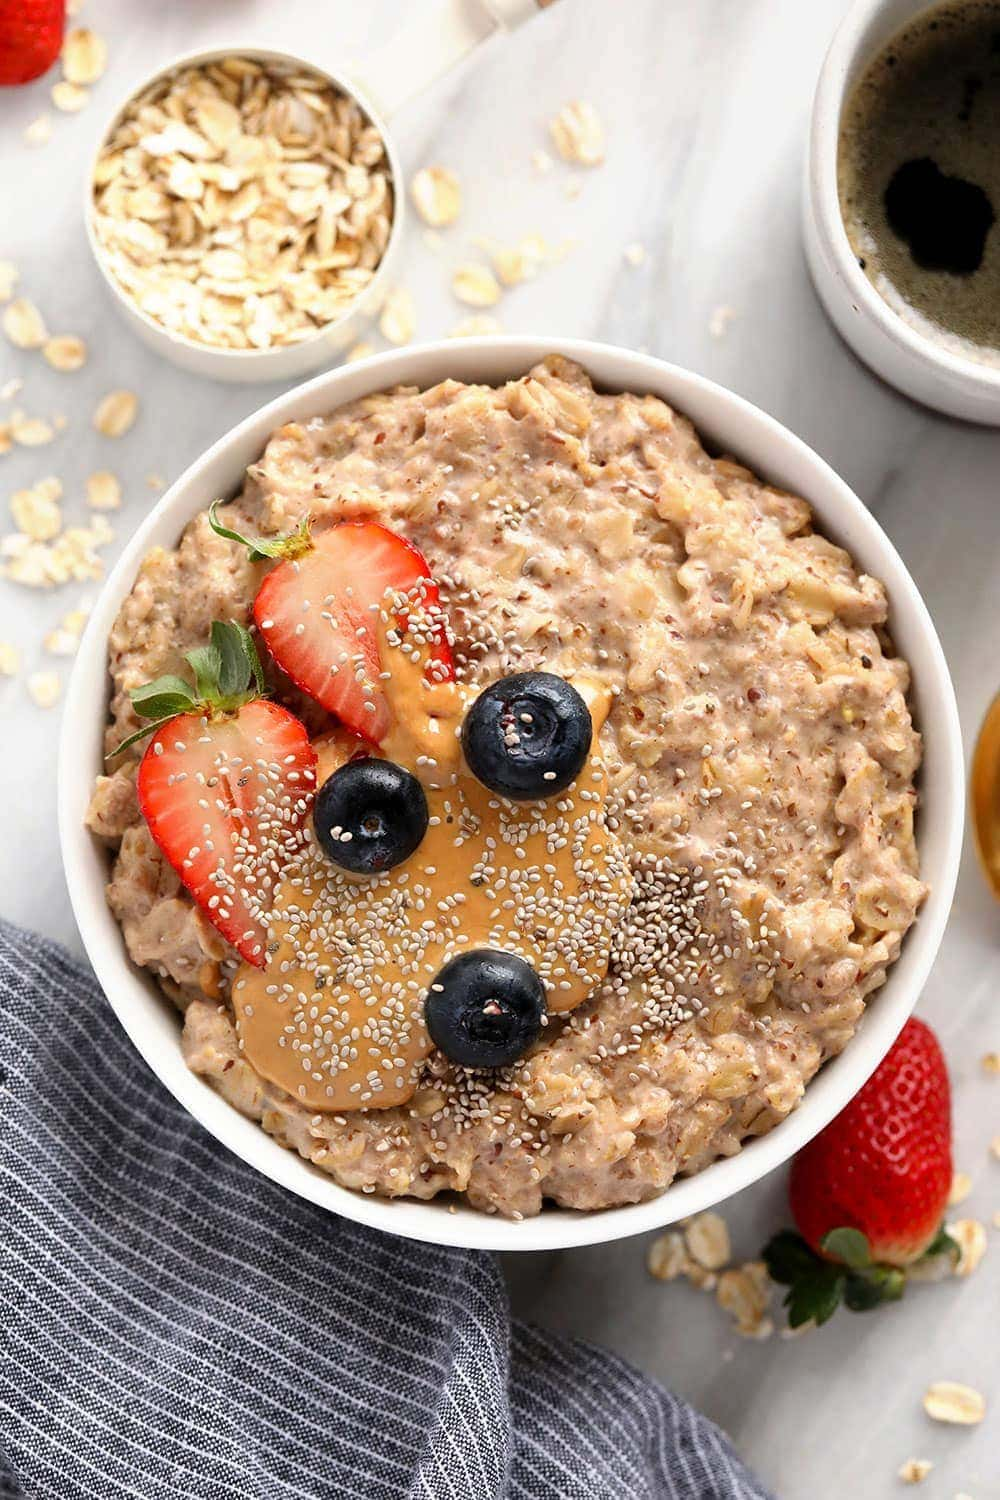 superfood oatmeal bowl topped with berries and chia seeds